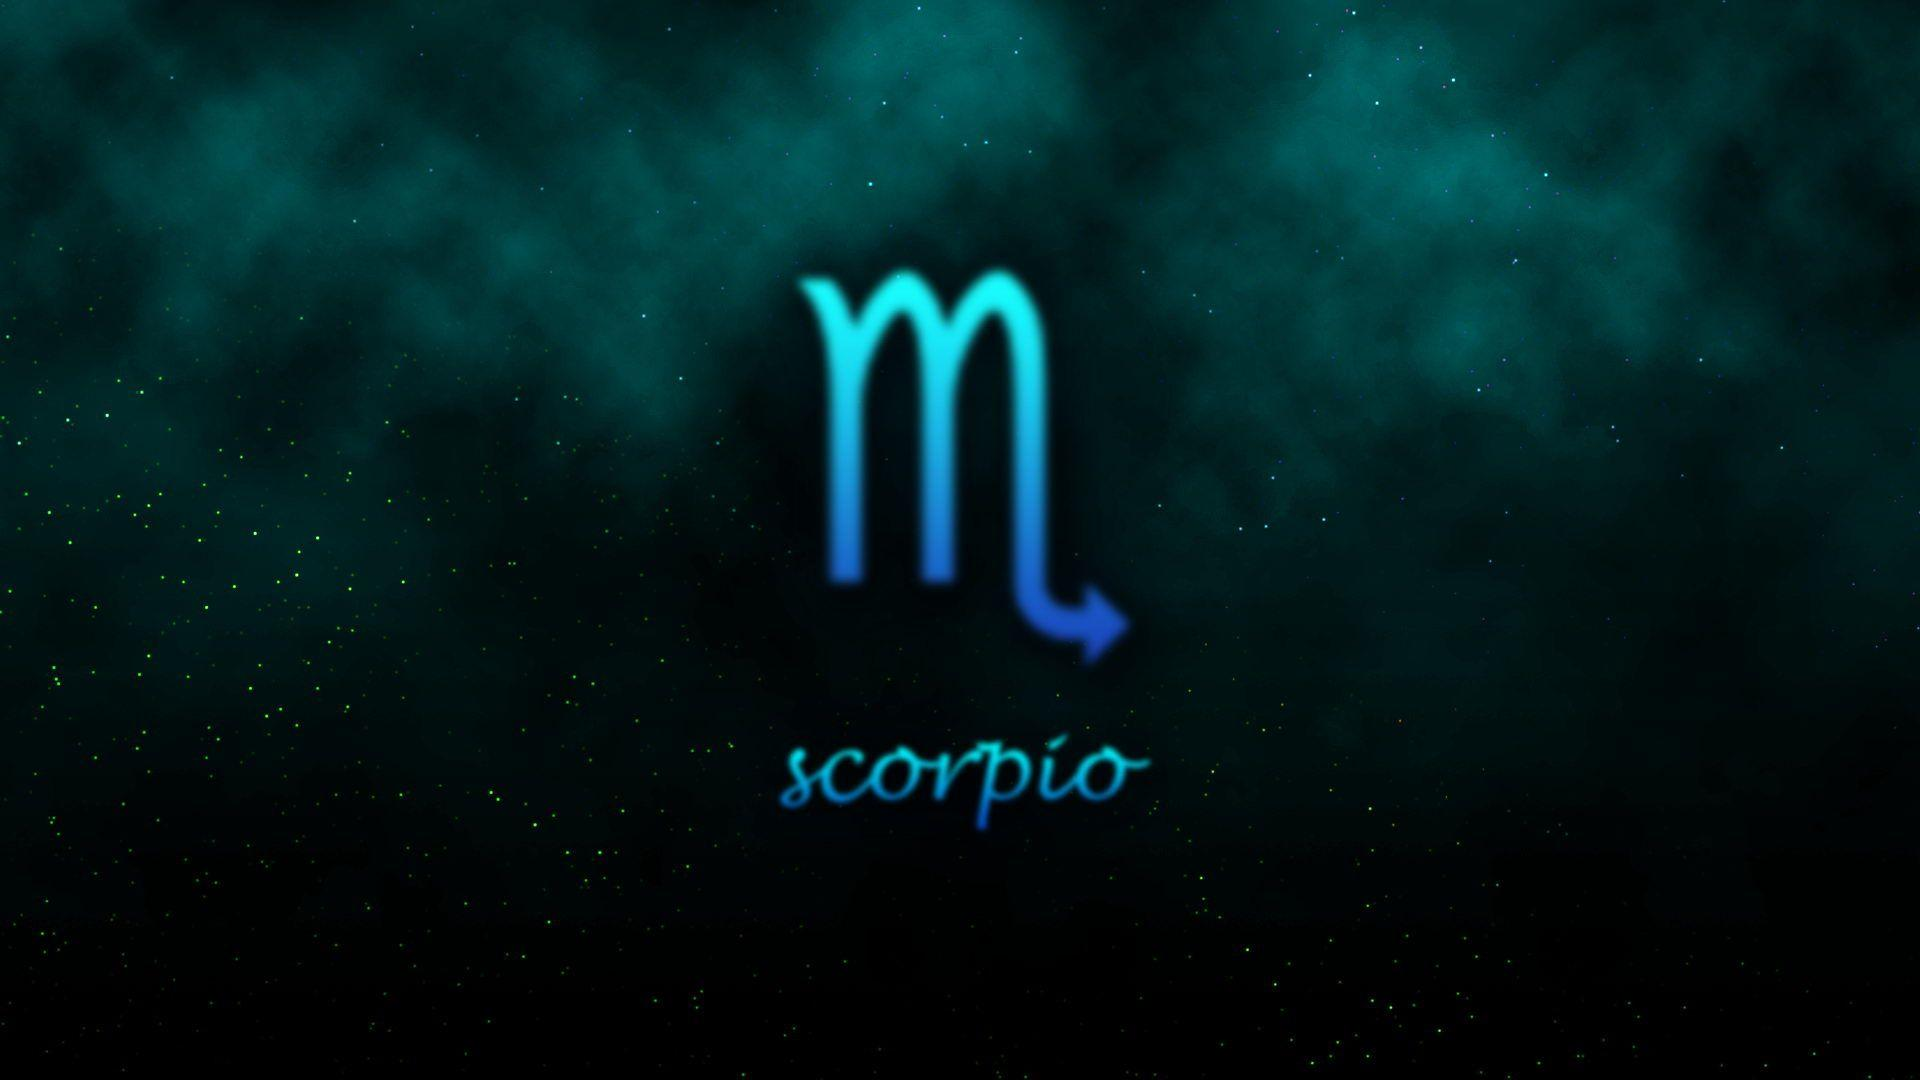 Scorpio HD Wallpapers